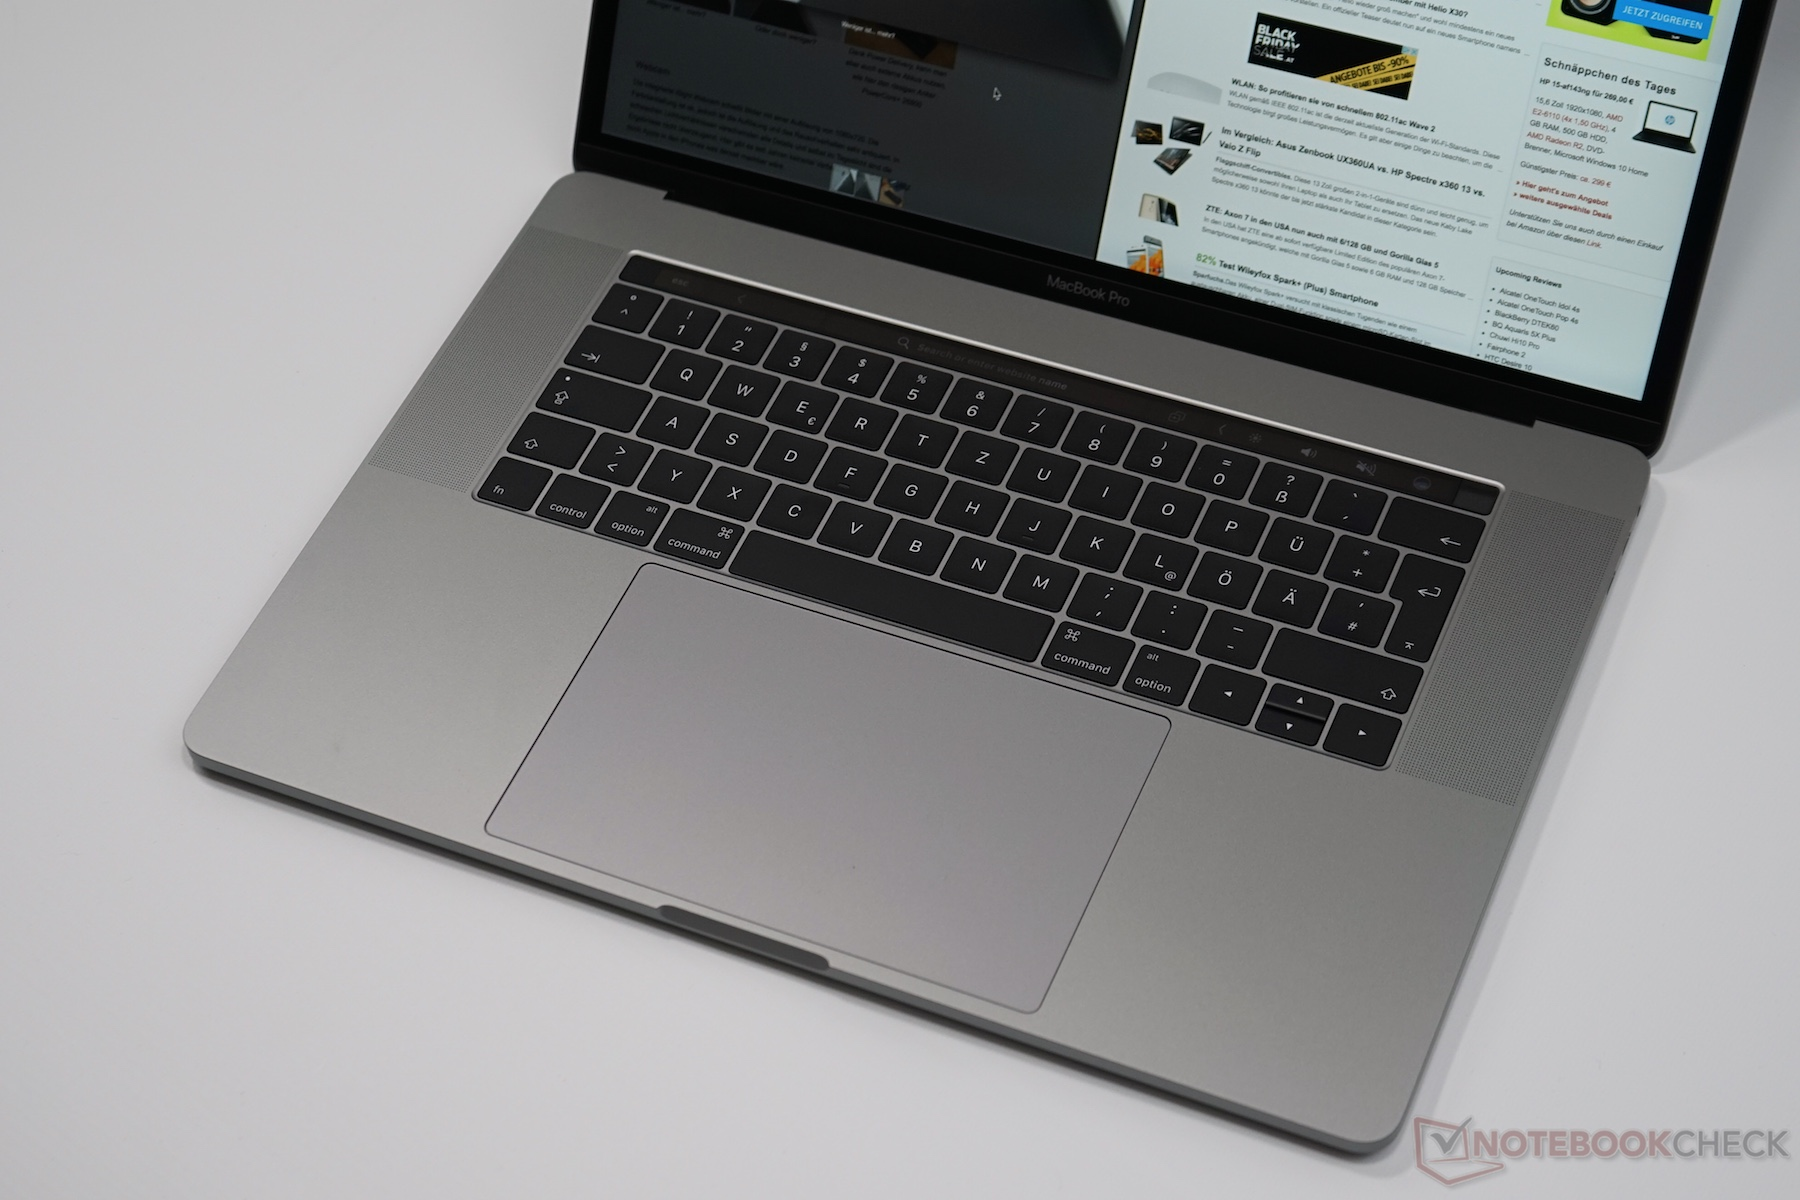 Apple MacBook Pro 15 2017 (2 8 GHz, 555) Laptop Review